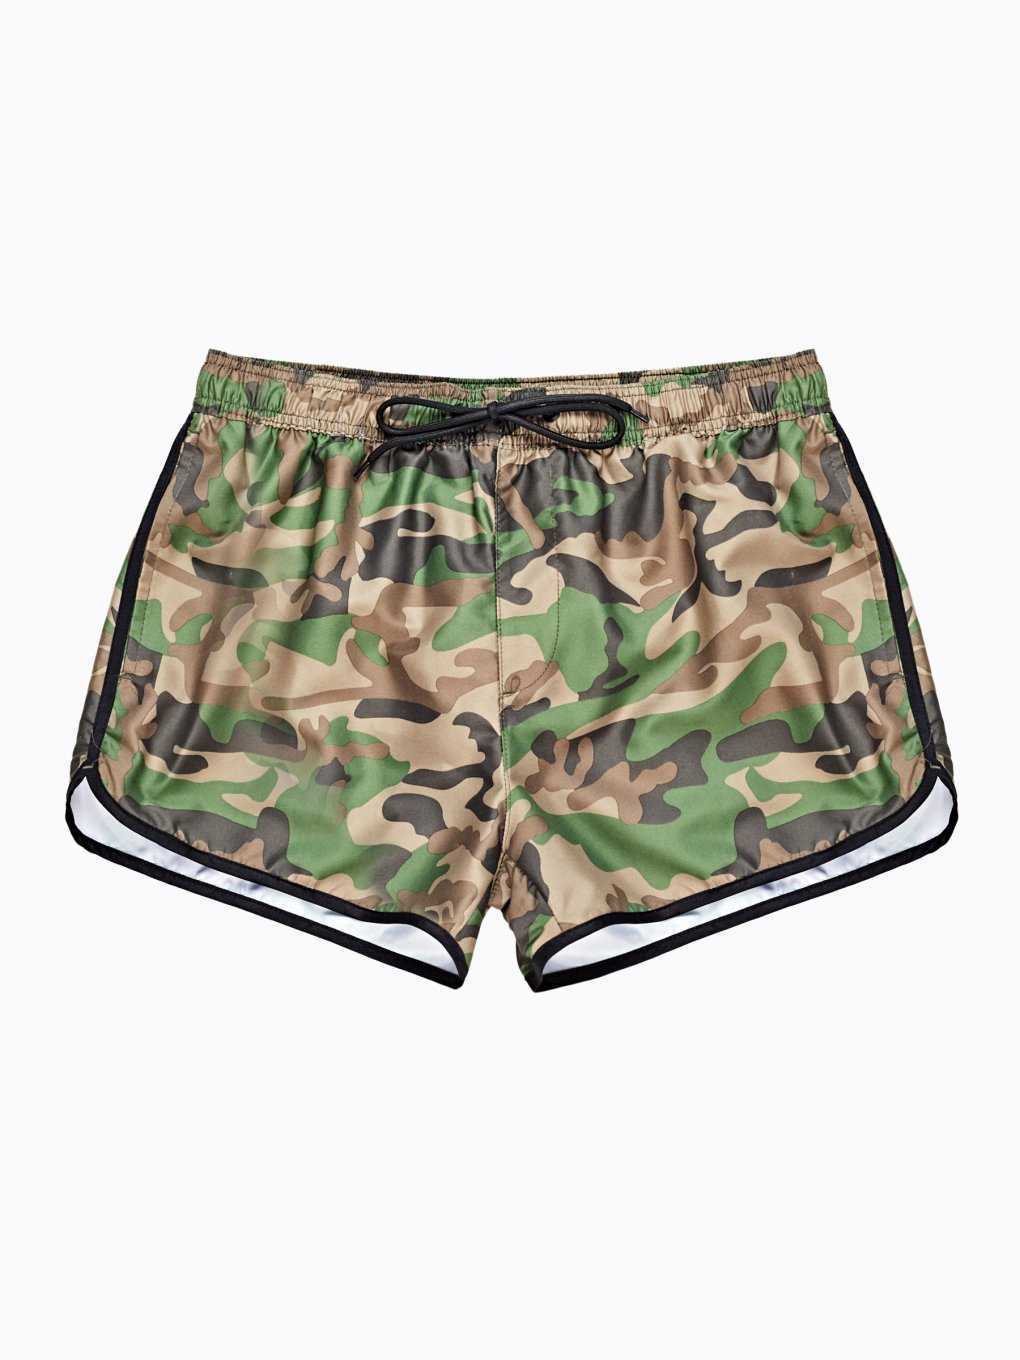 Camo print swim shorts with contrast trim